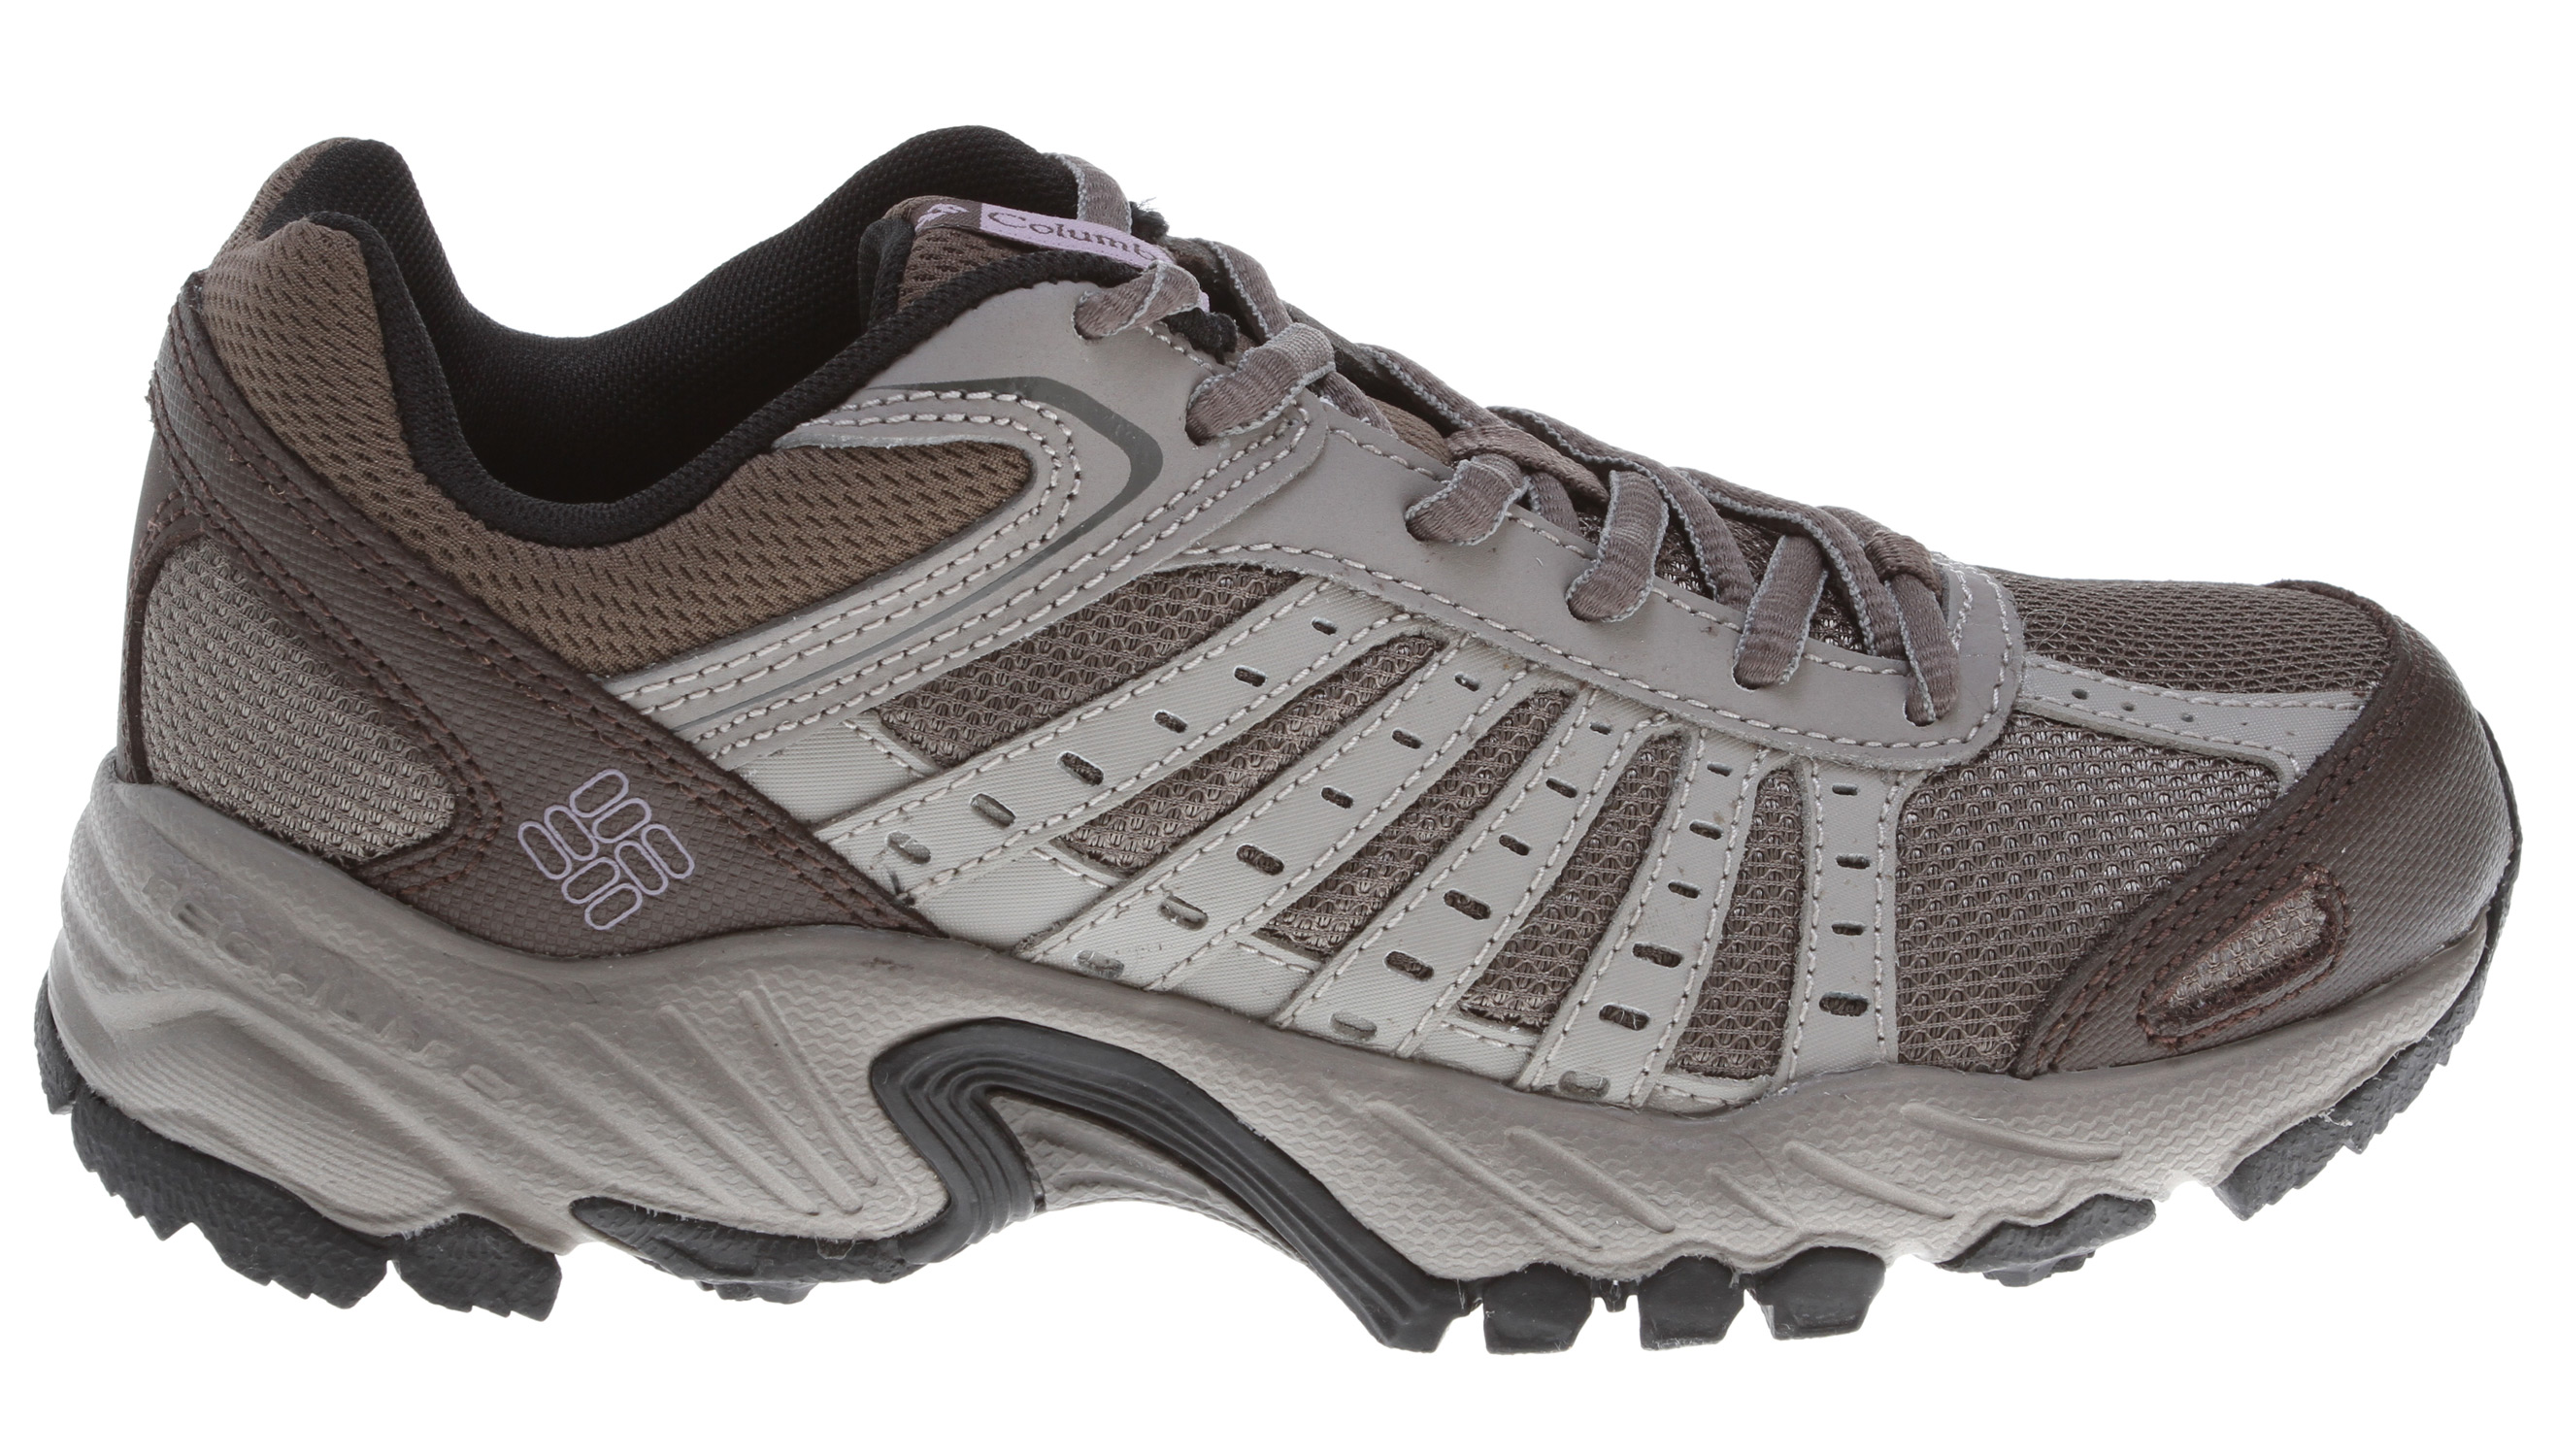 Camp and Hike Key Features of the Columbia Whitney Ridge Low Shoes: Leather, Mesh and Textile Upper Lightweight Techlite Midsole Omni-Grip Outsole - $41.95